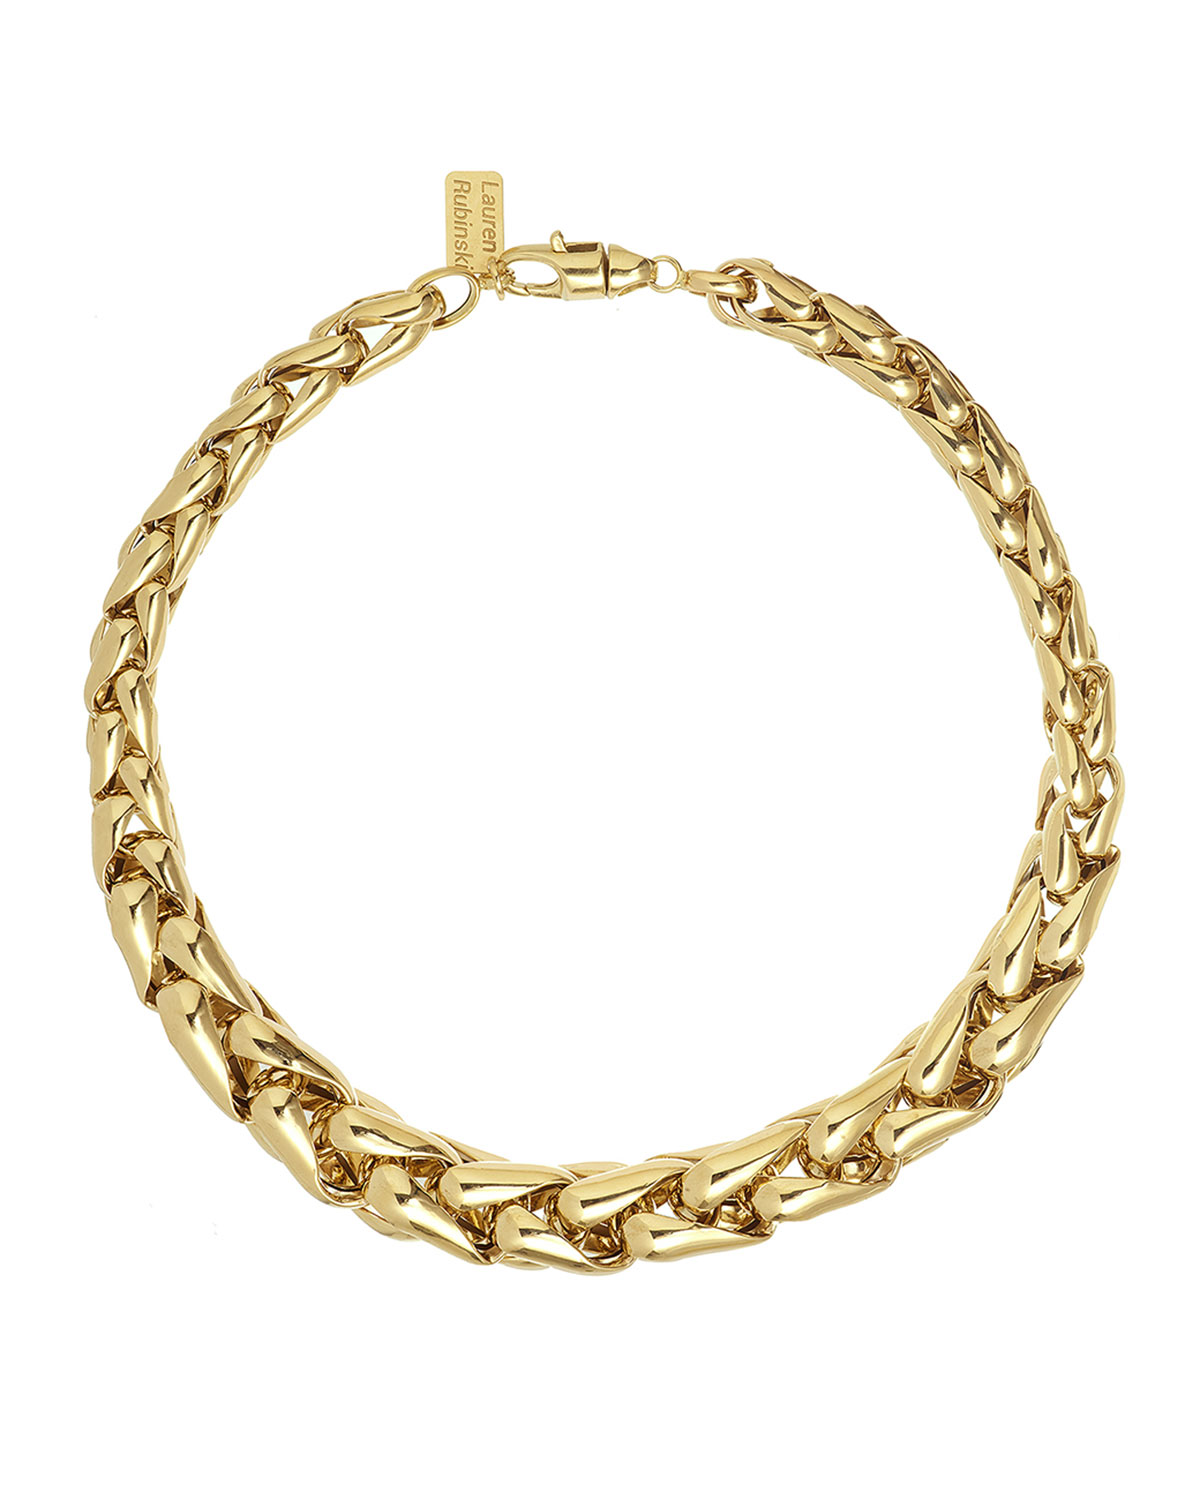 14k Graduating Small Chain Necklace